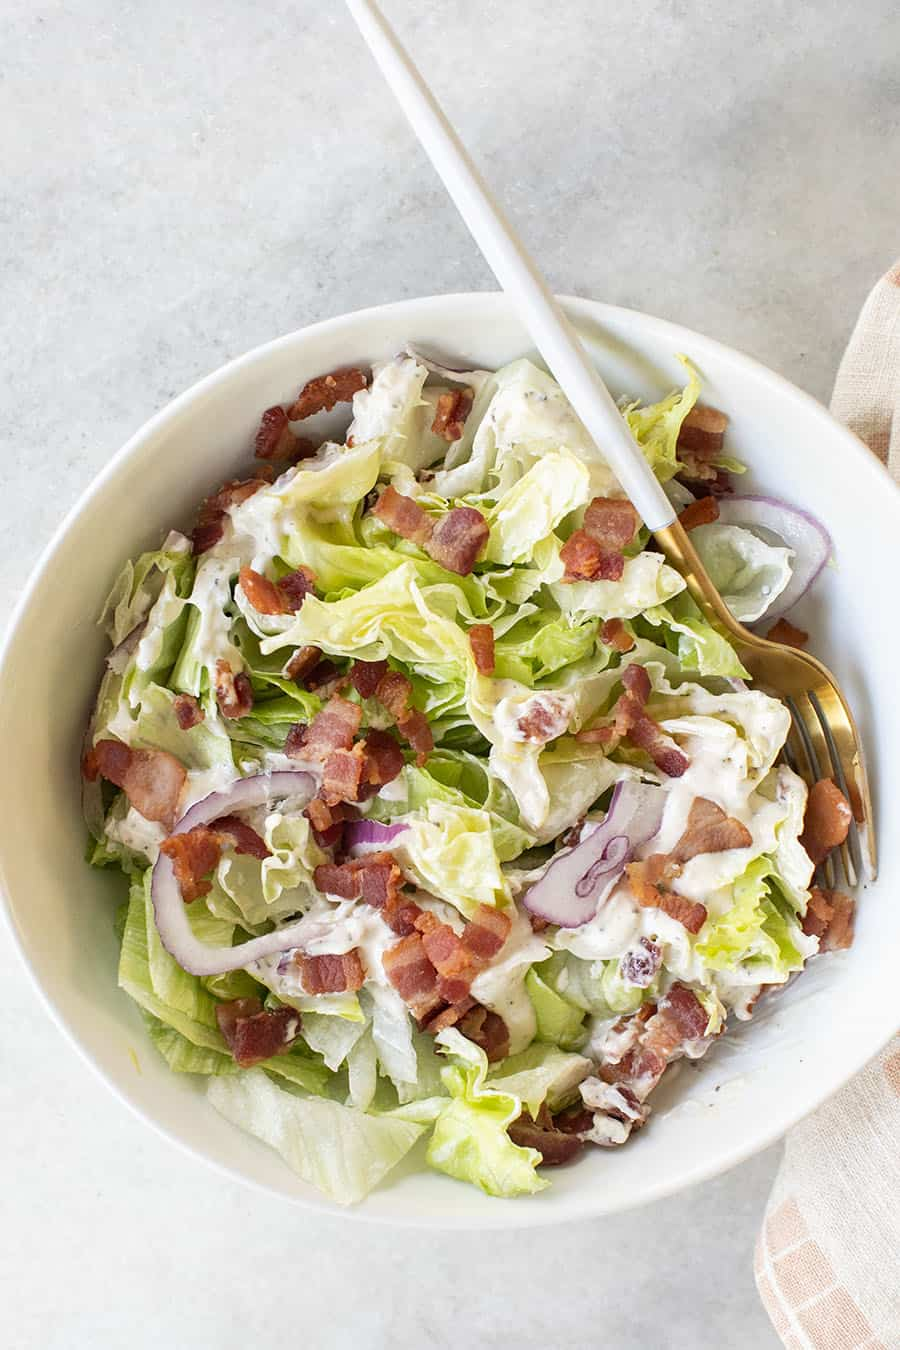 Wedge salad chopped in a white bowl.